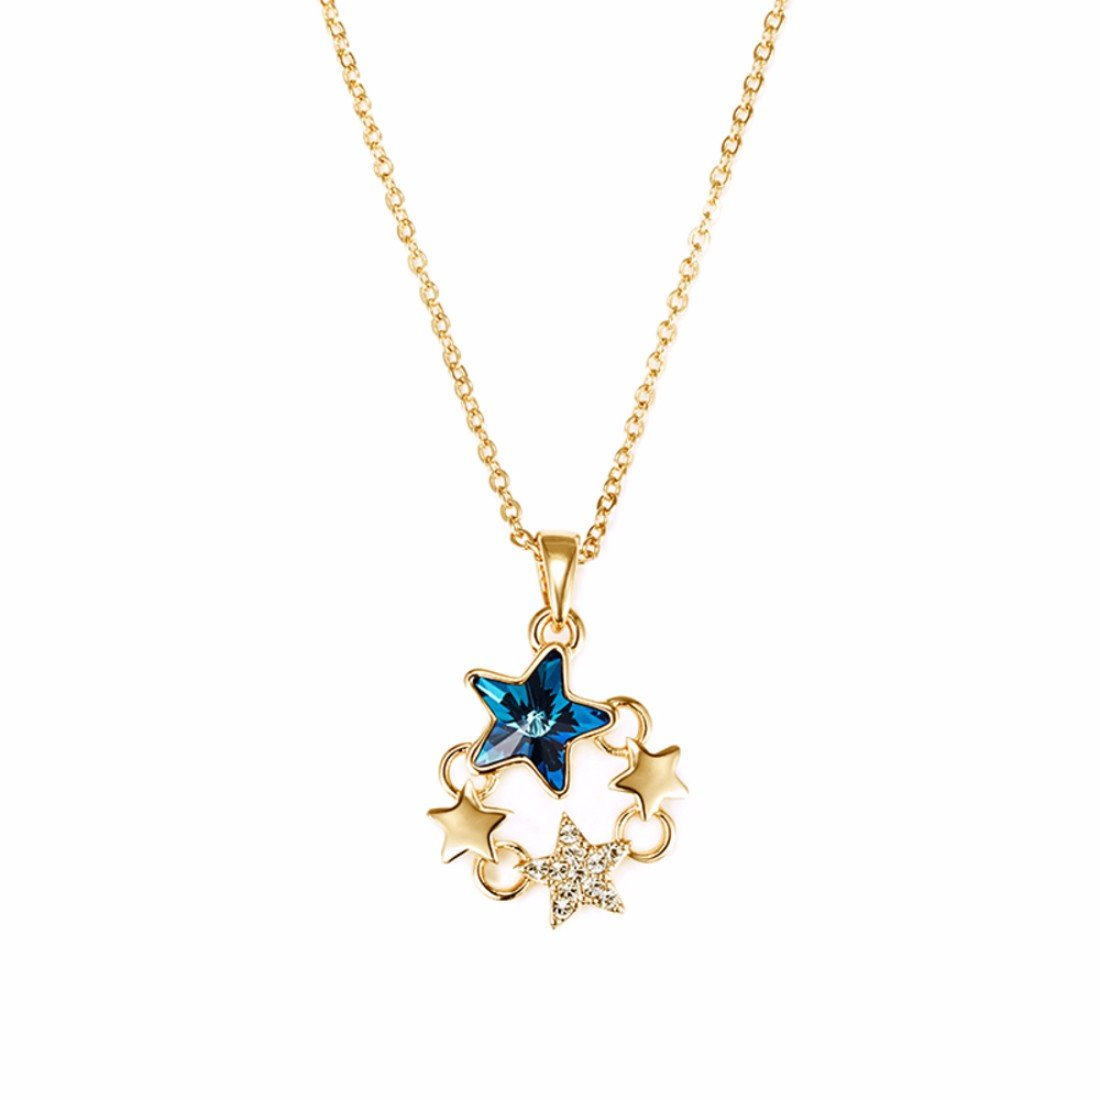 7677691e9 Buy NEVI Star Fashion Crystals from Swarovski Gold Plated Princess Pendant  Chain Jewellery for Women & Girls (Gold, Blue & Silver) Online at Low  Prices in ...